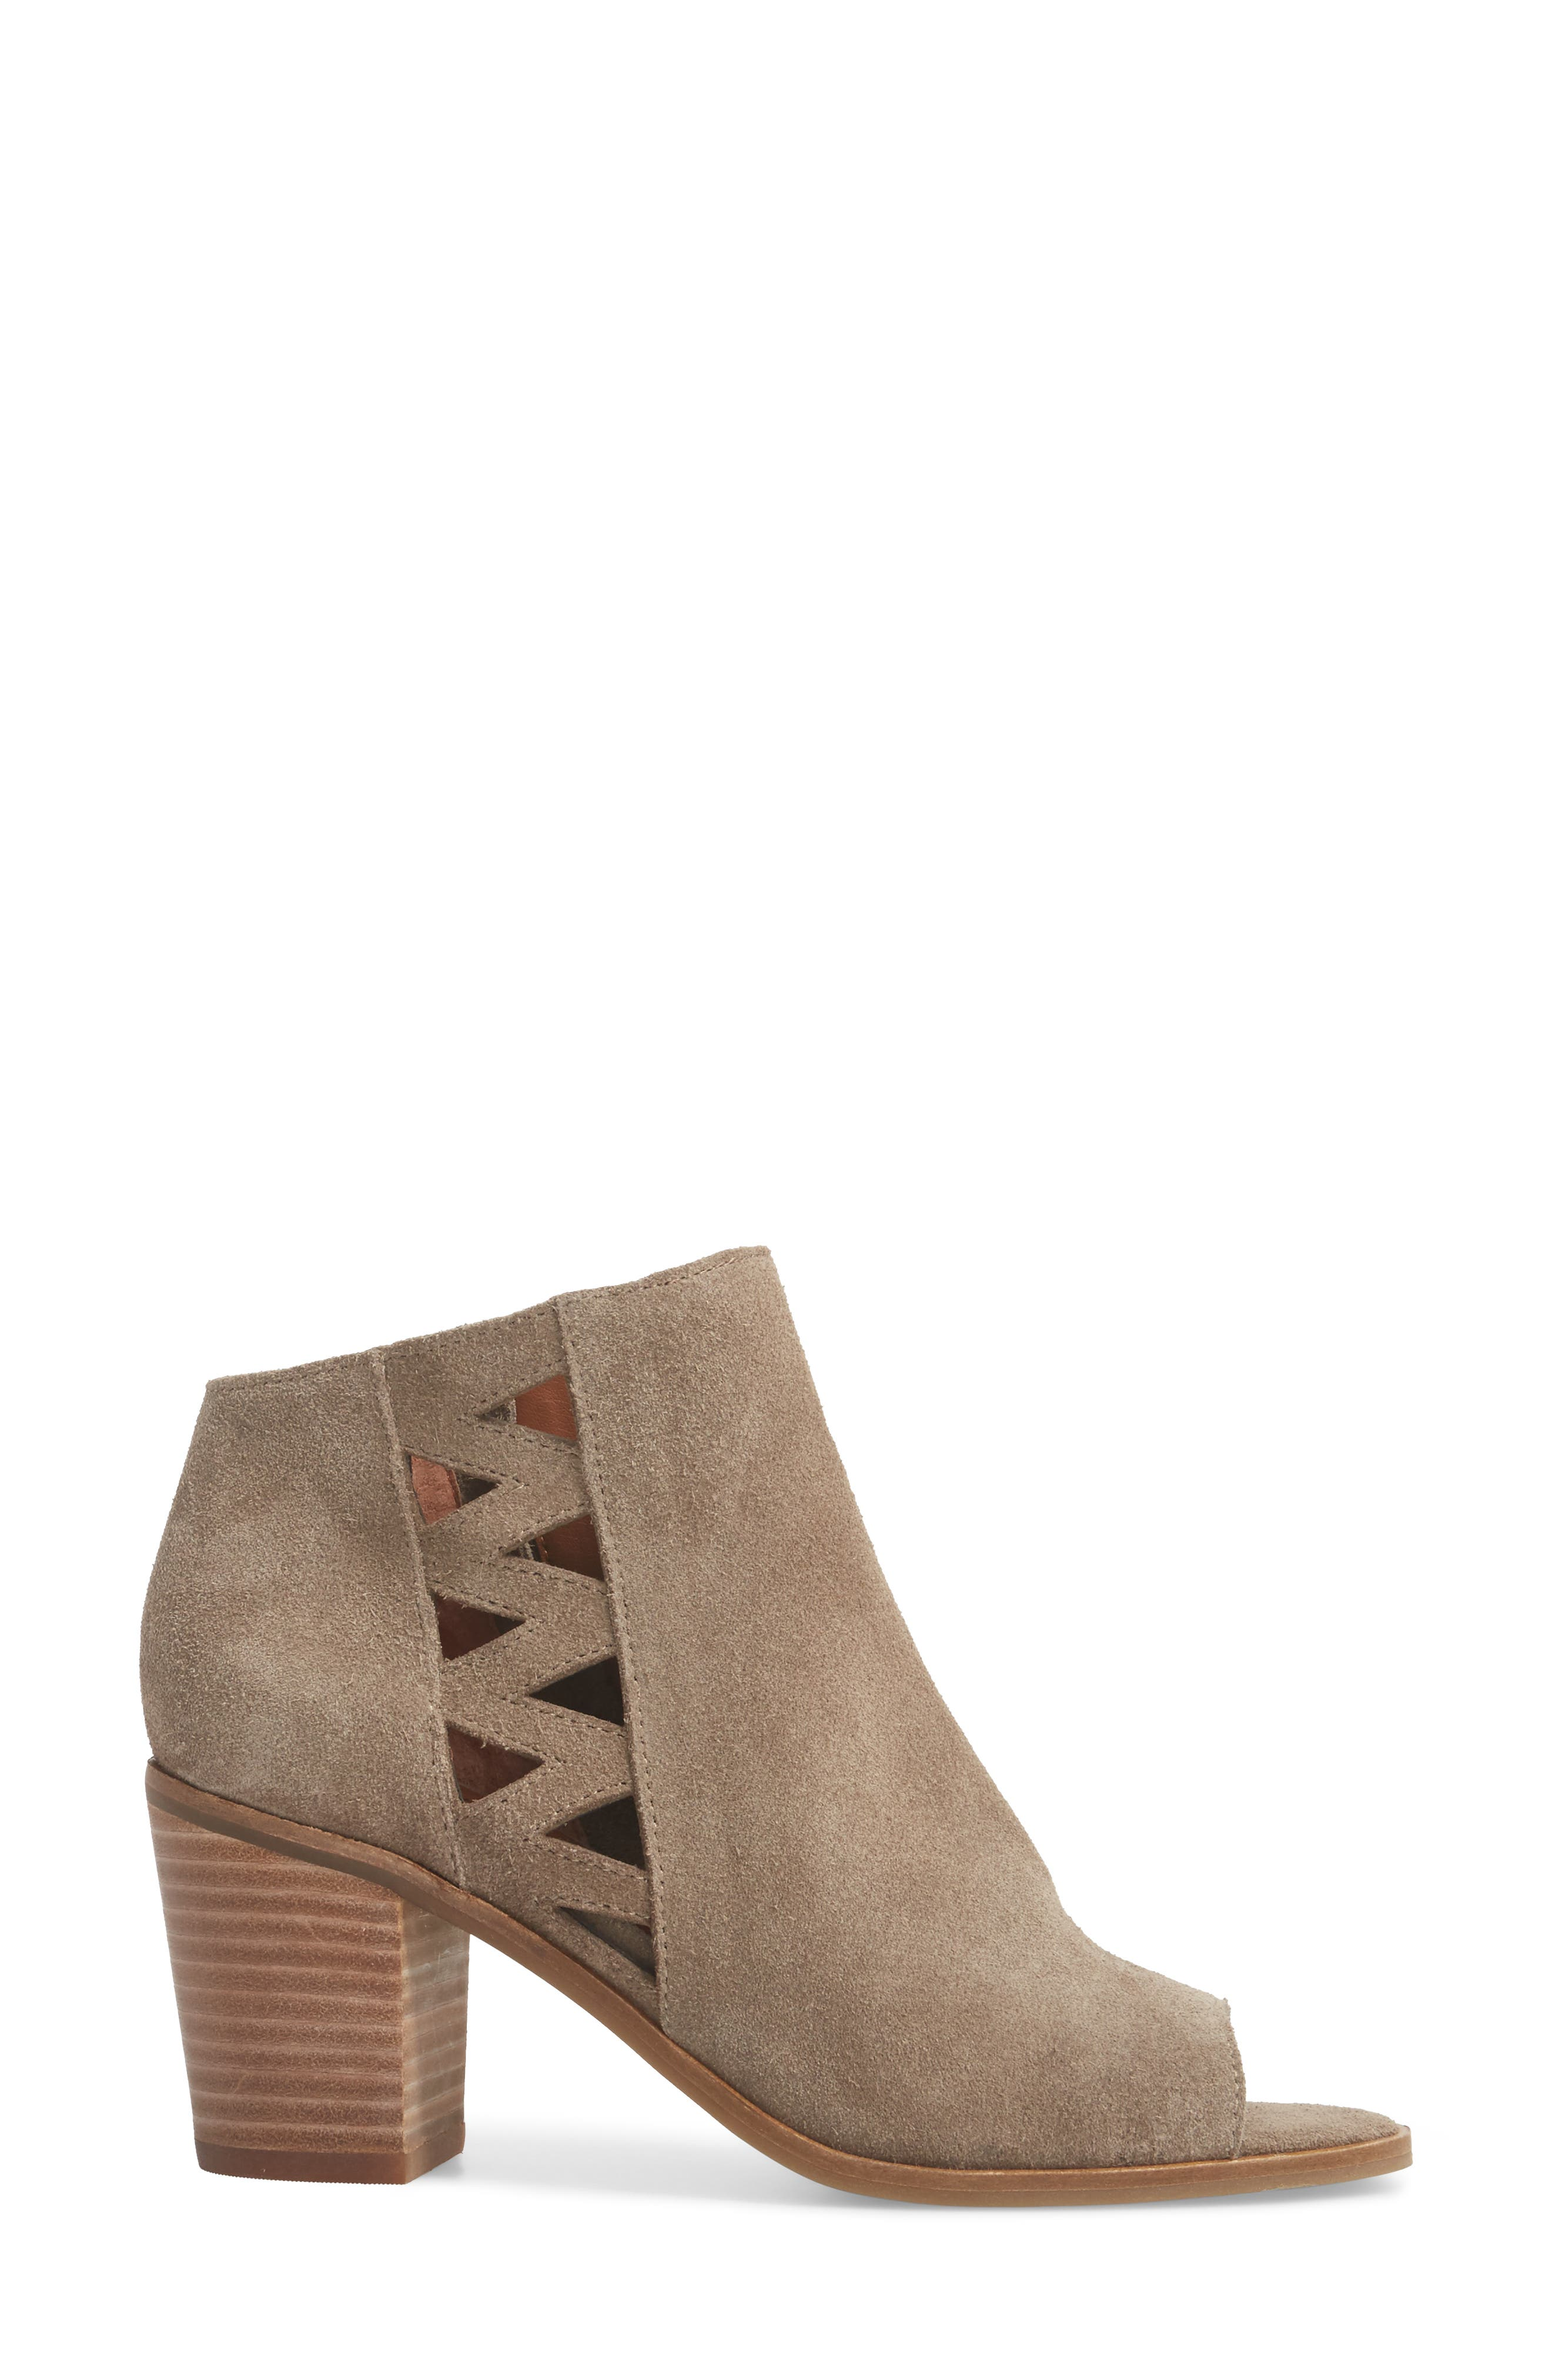 Kantoah Bootie,                             Alternate thumbnail 3, color,                             Brindle Suede